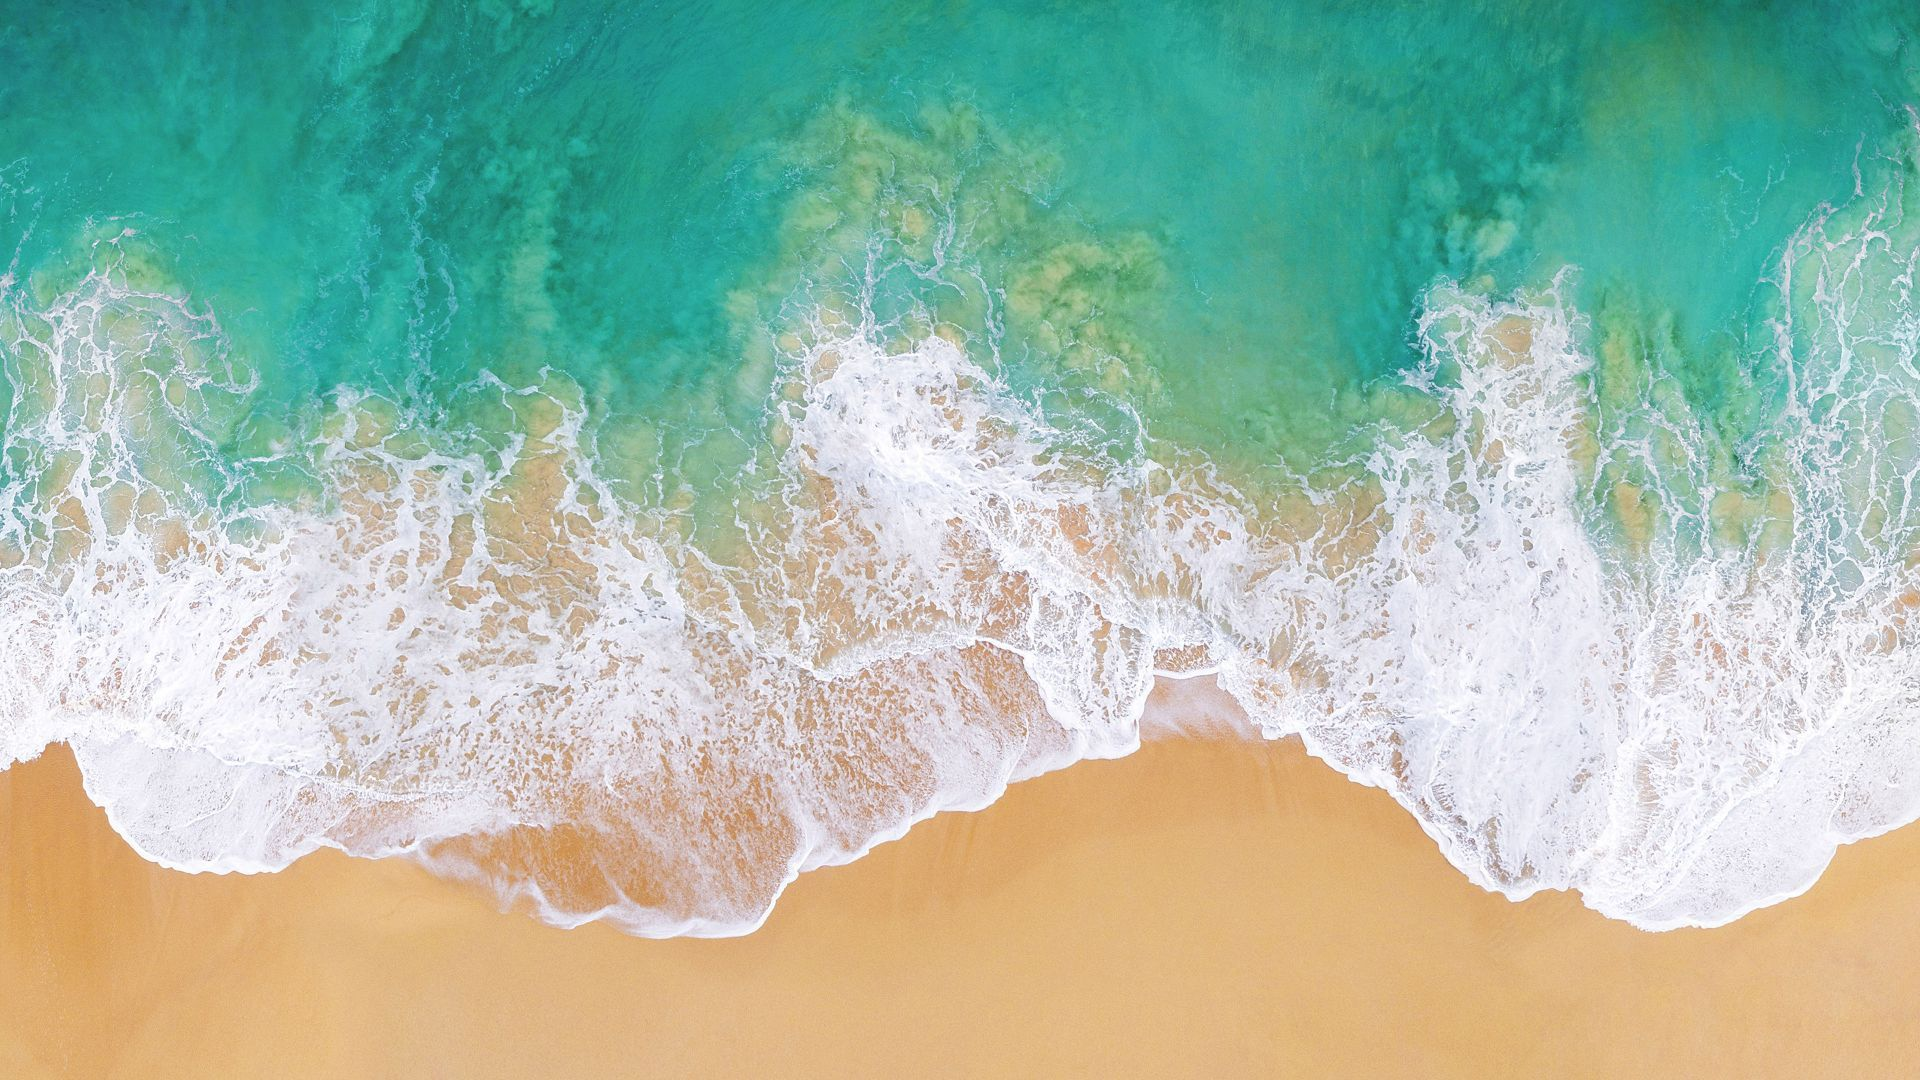 Wallpaper iOS 11, 4k, 5k, beach, ocean, OS 13655 Ios 11